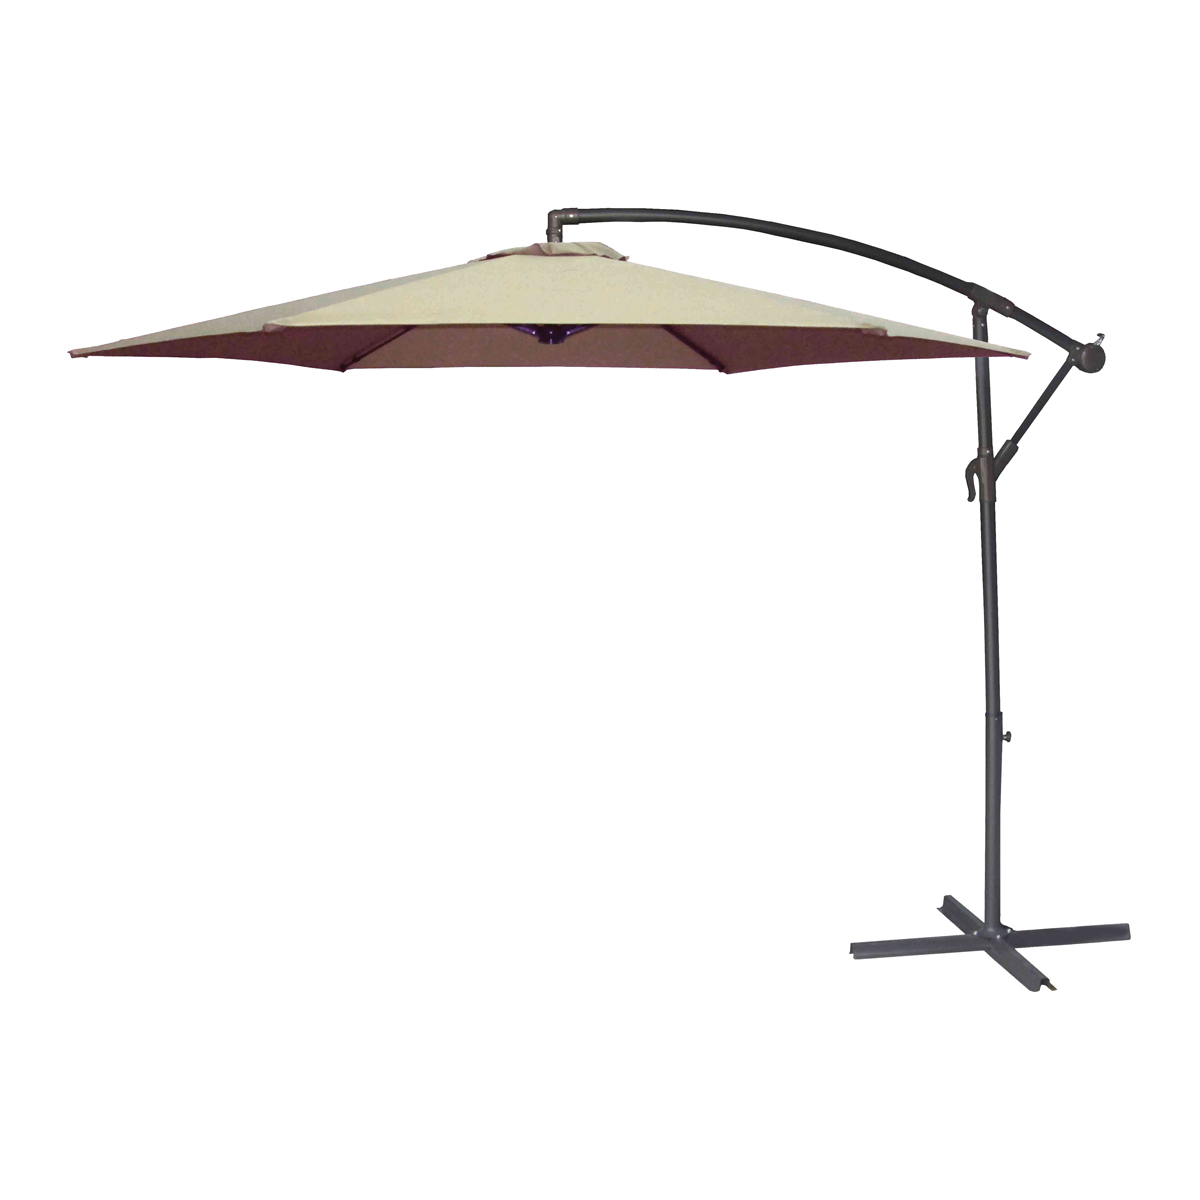 Picture of Seasonal Trends UMSC10BKOBD-04 Solar Offset Taupe Umbrella, 98.42 in OAH, 10 ft W Canopy, 10 ft L Canopy